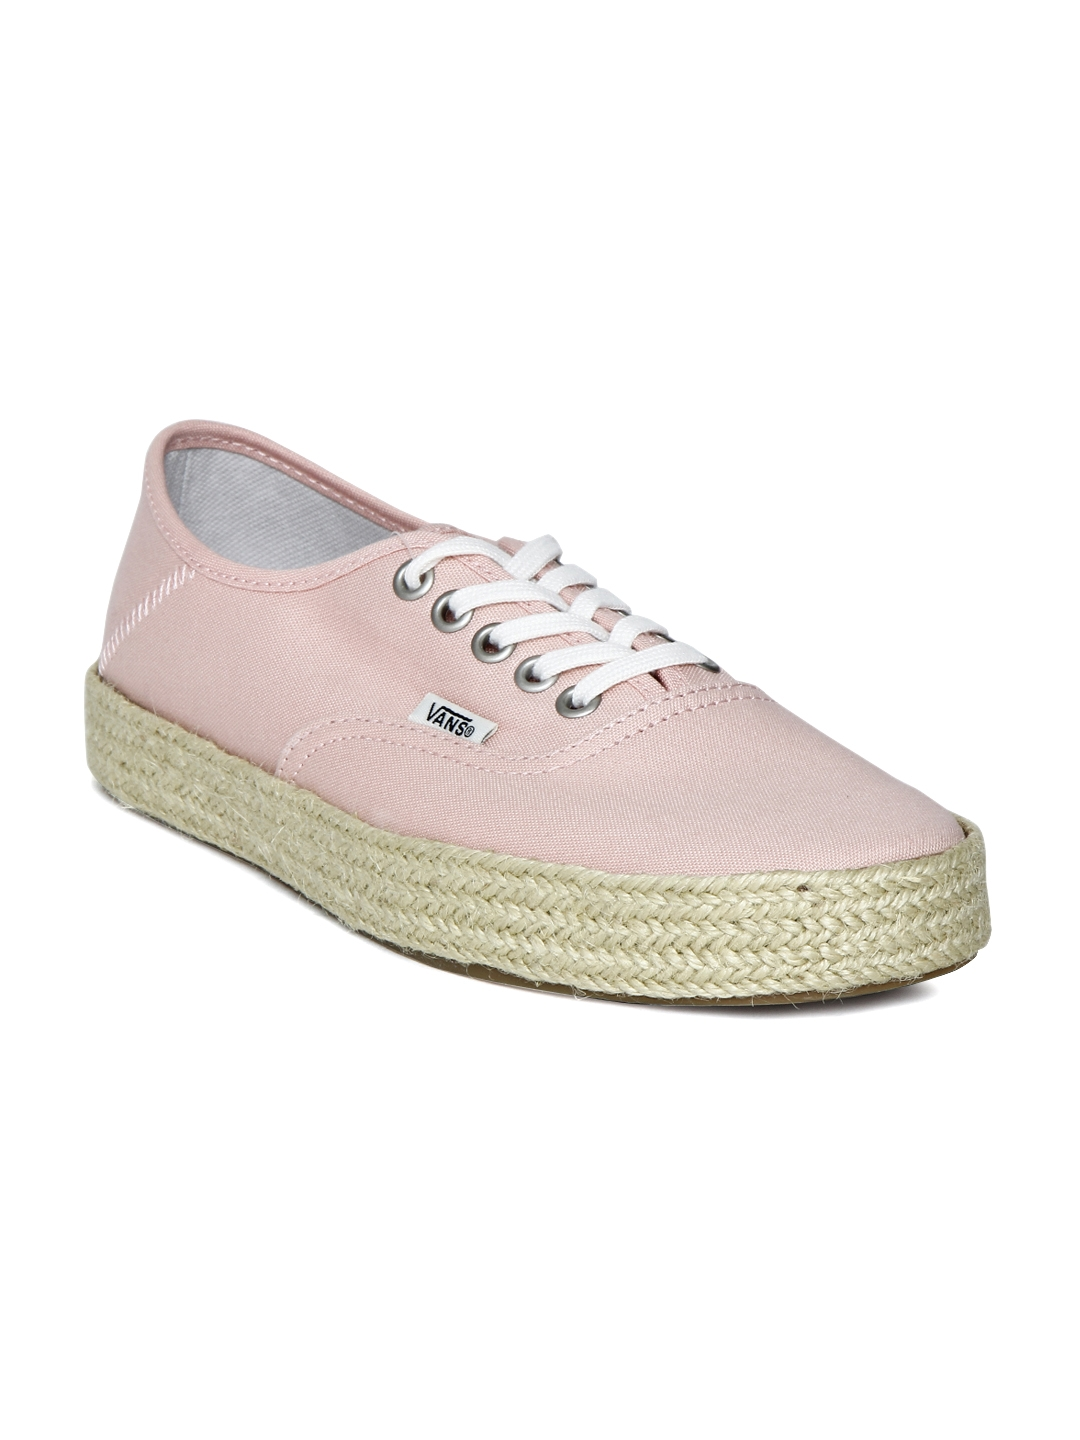 Sports Shoes for Women. Sports shoes are an essential item in everyone's closet, as they are comfortable, yet oh so stylish. They are the perfect companion for a woman with an active lifestyle.